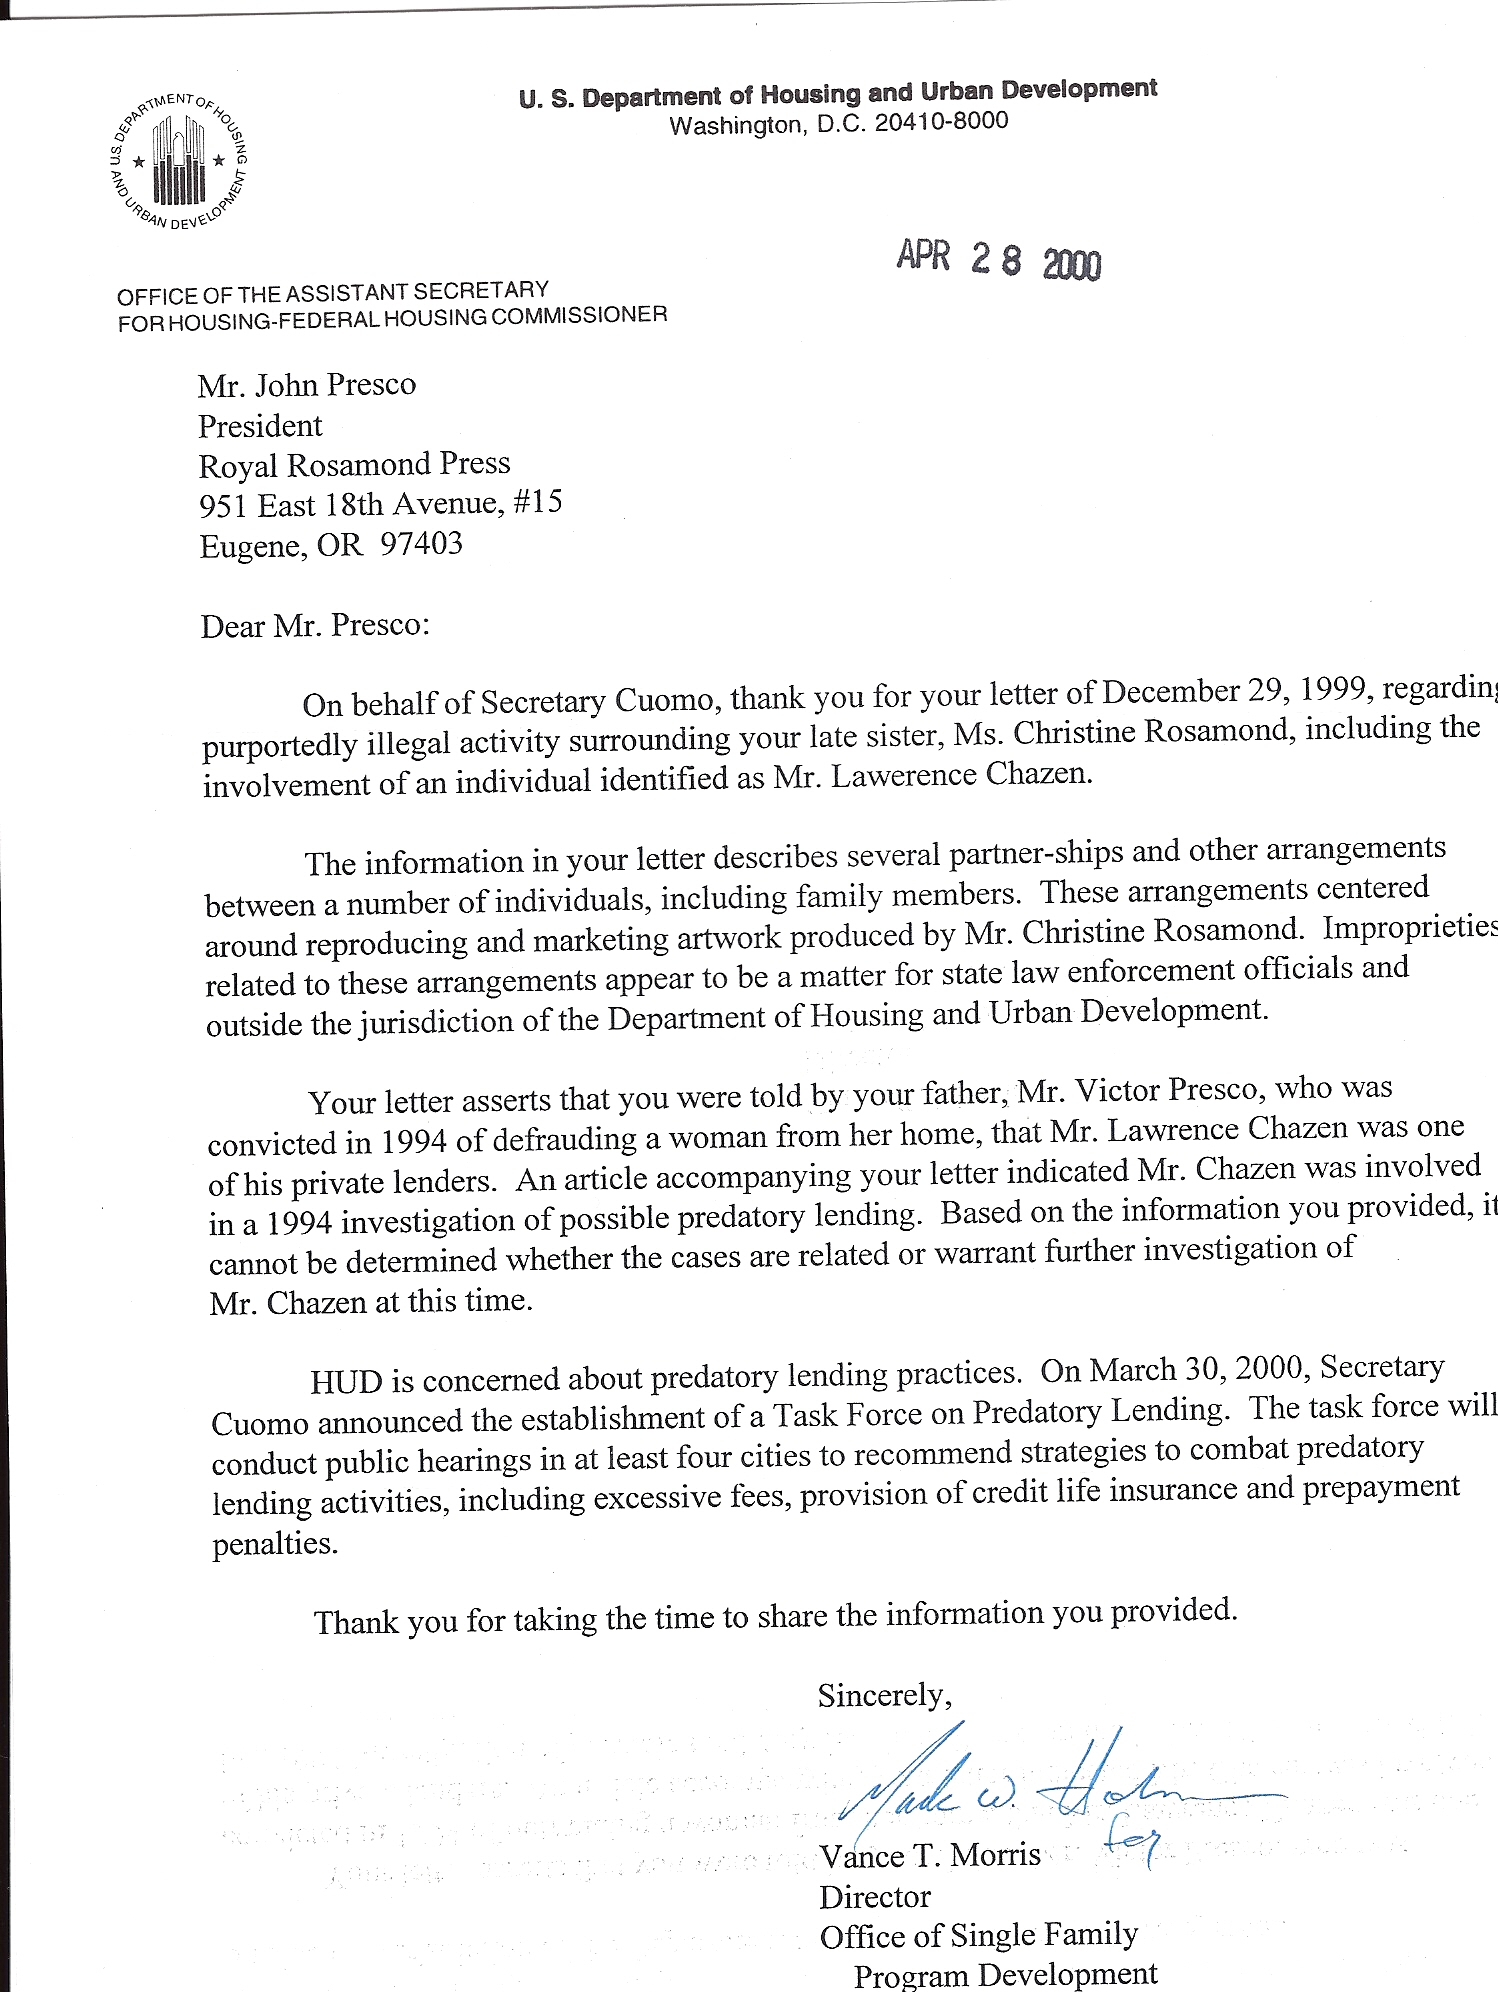 mortgage default letter template - my letter to andrew cuomo rosamond press